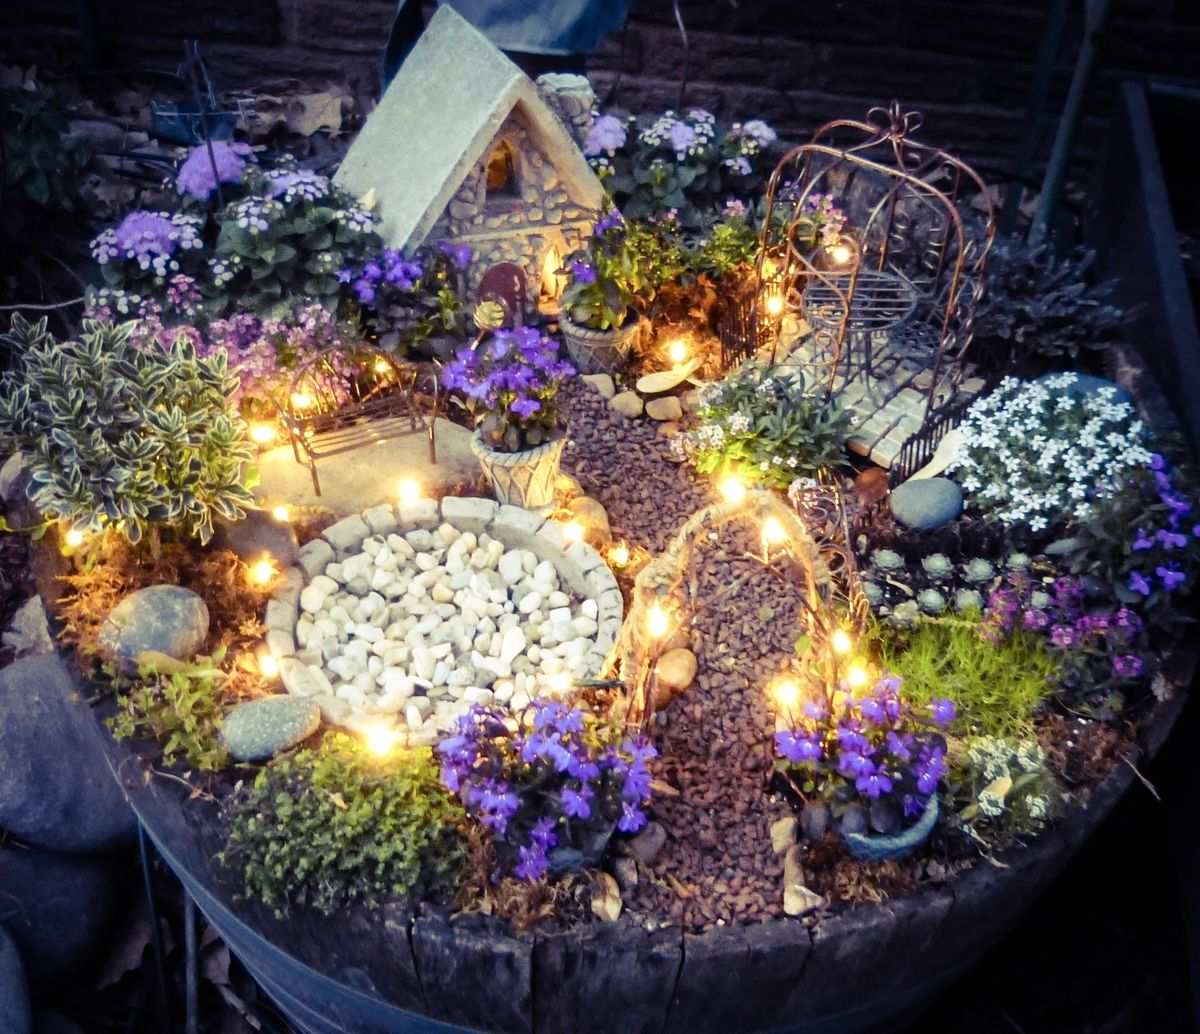 12 some enchanted evening - Fairy Garden Design Ideas